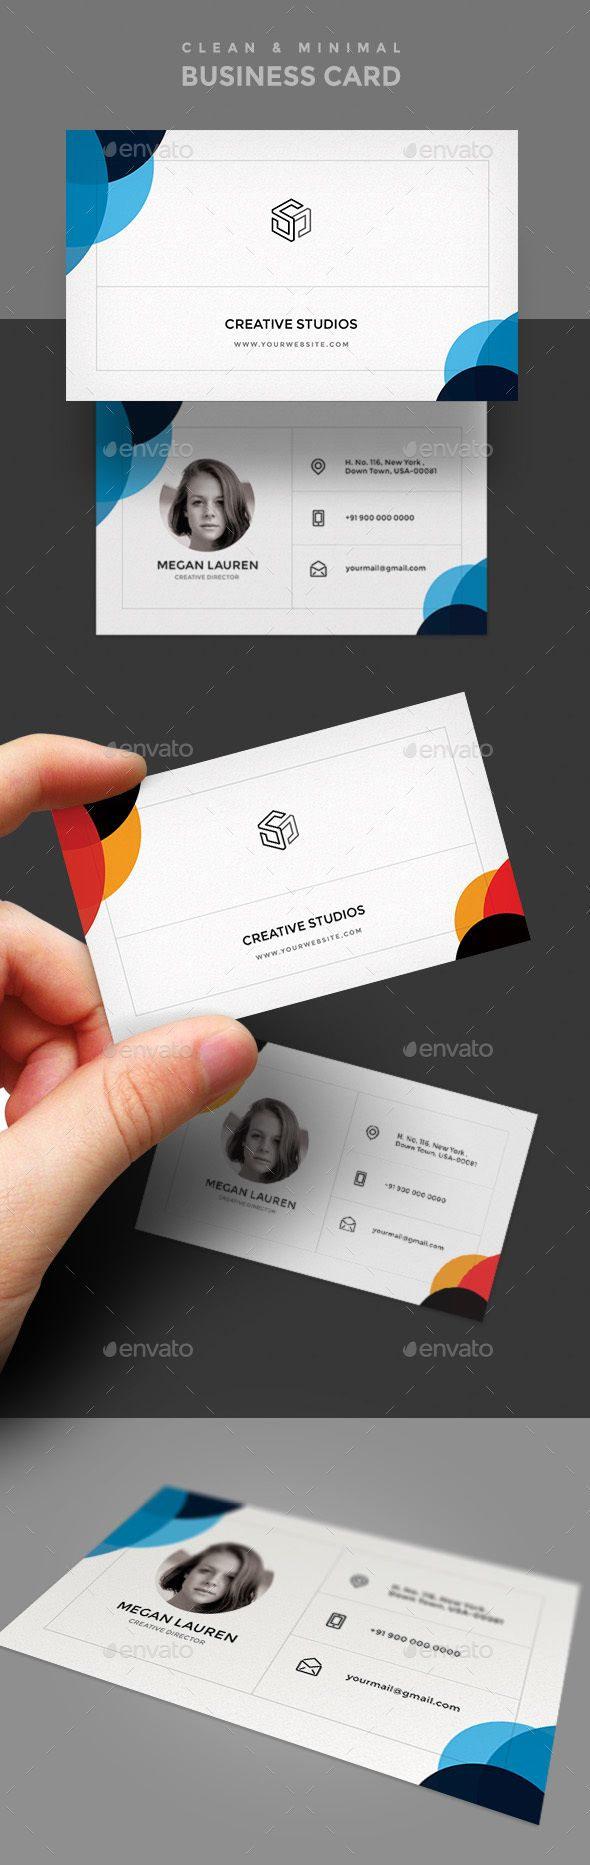 Business card template card templates business cards and simple business card template by different colors images are smart objects easy editable text cmyk 300 dpi c print ready perfectly aligned organised l alramifo Images